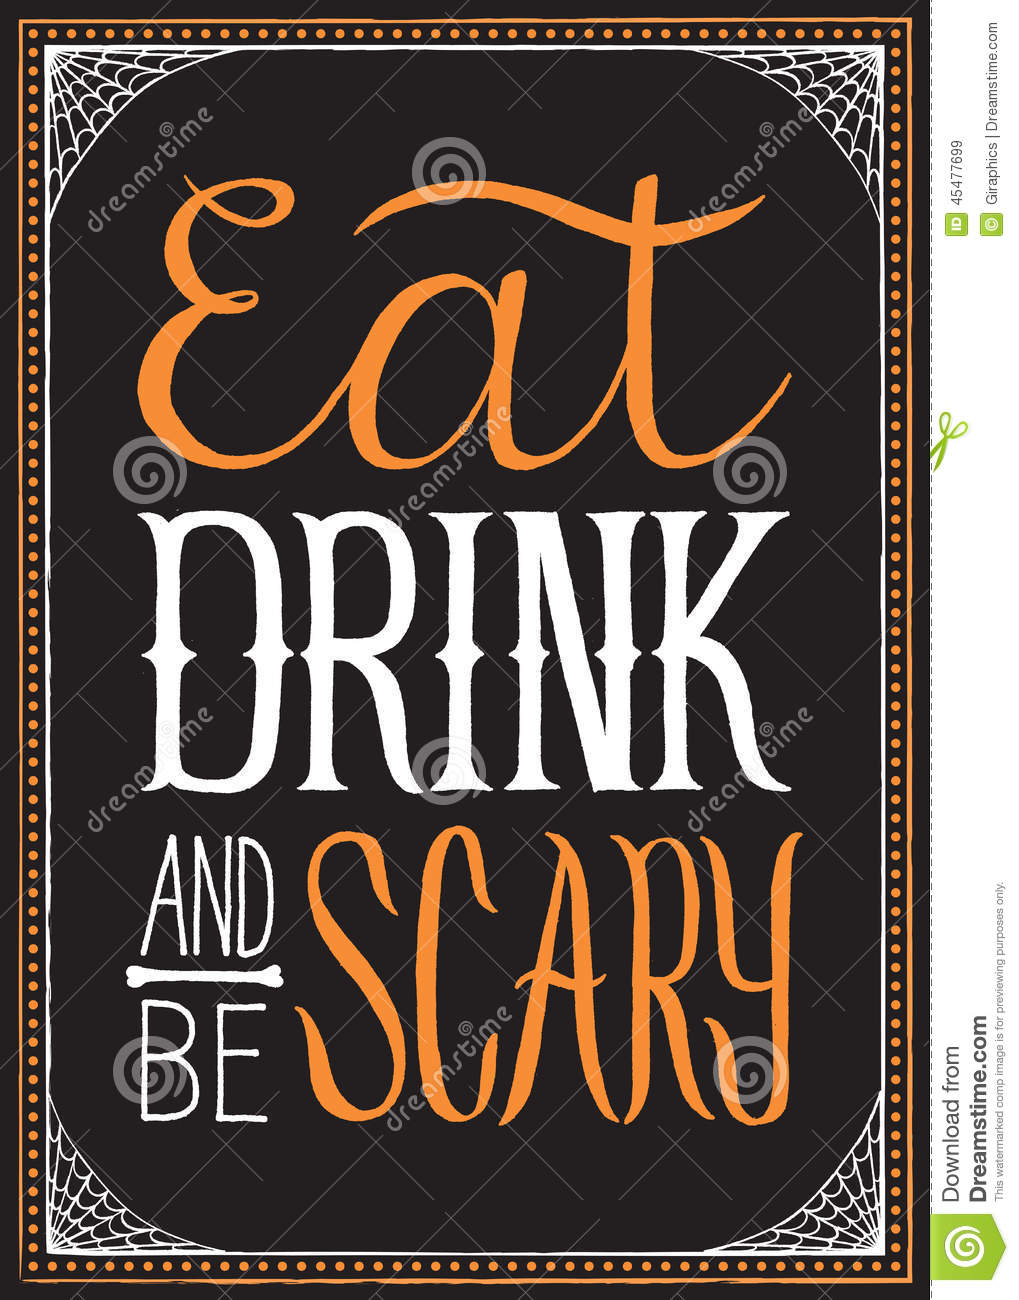 Eat, Drink And Be Scary Halloween Background Stock Vector - Image: 45477699